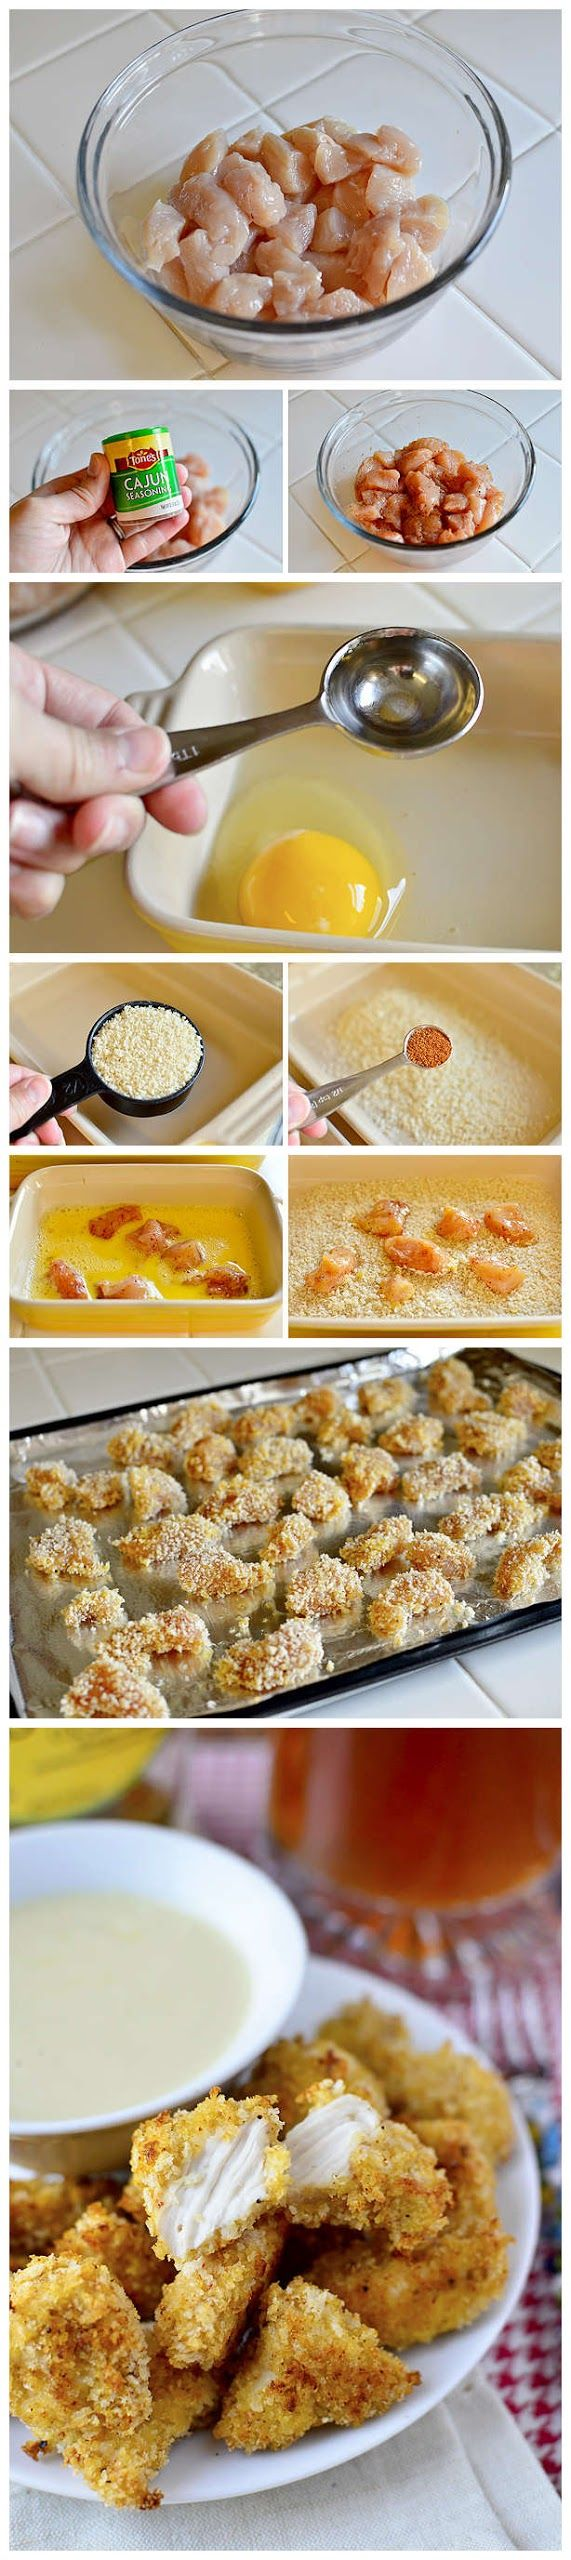 Baked Popcorn Chicken Ingredients 1lb chicken breasts, cut into bite-sized pieces salt & pepper Cajun seasoning 2 eggs 2 Tablespoons water 1-1/2 cups panko bread crumbs 3/4 teaspoon Cajun Seaso...